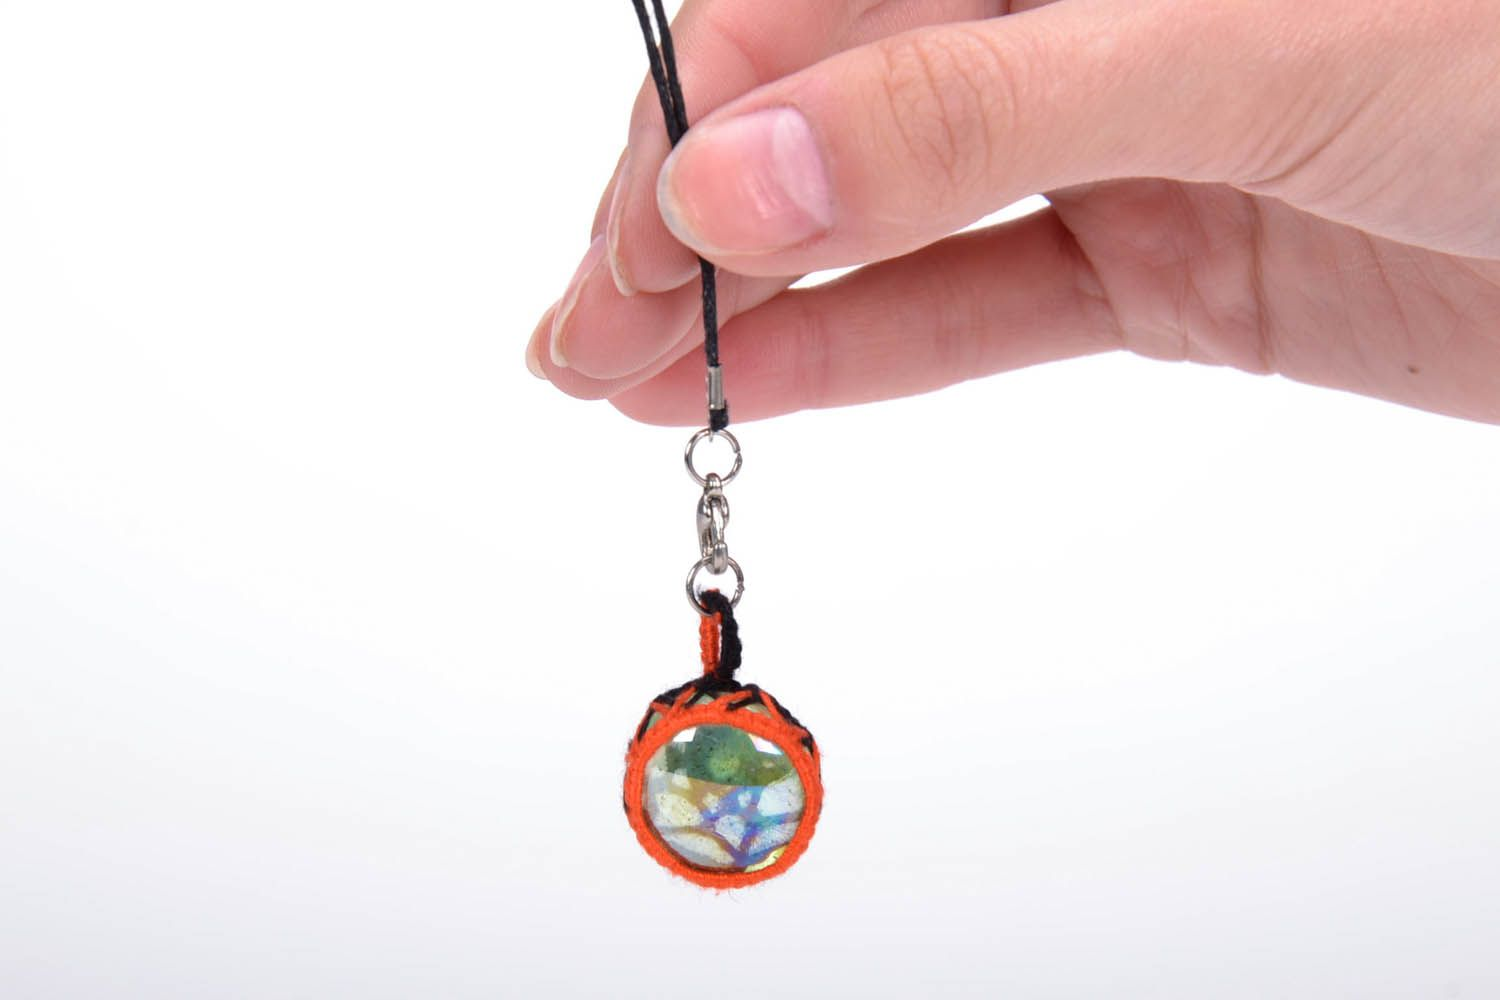 Cell phone charm photo 5